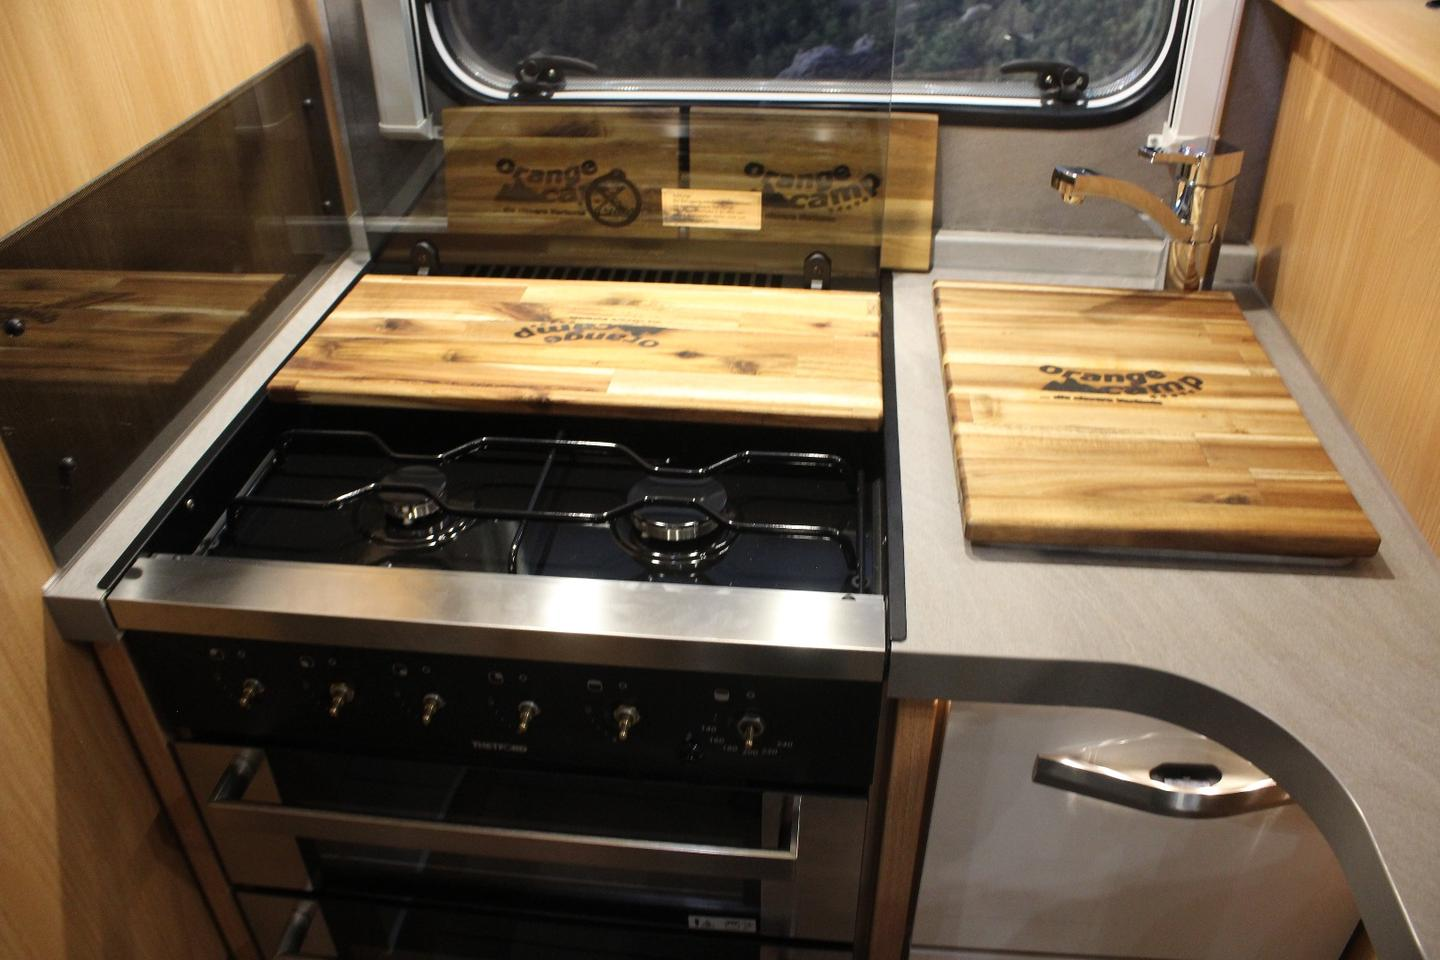 Orange Camp gives the Boxer T 740 EBa nice kitchen with four-burner gas stove, oven and 146-Lfridge